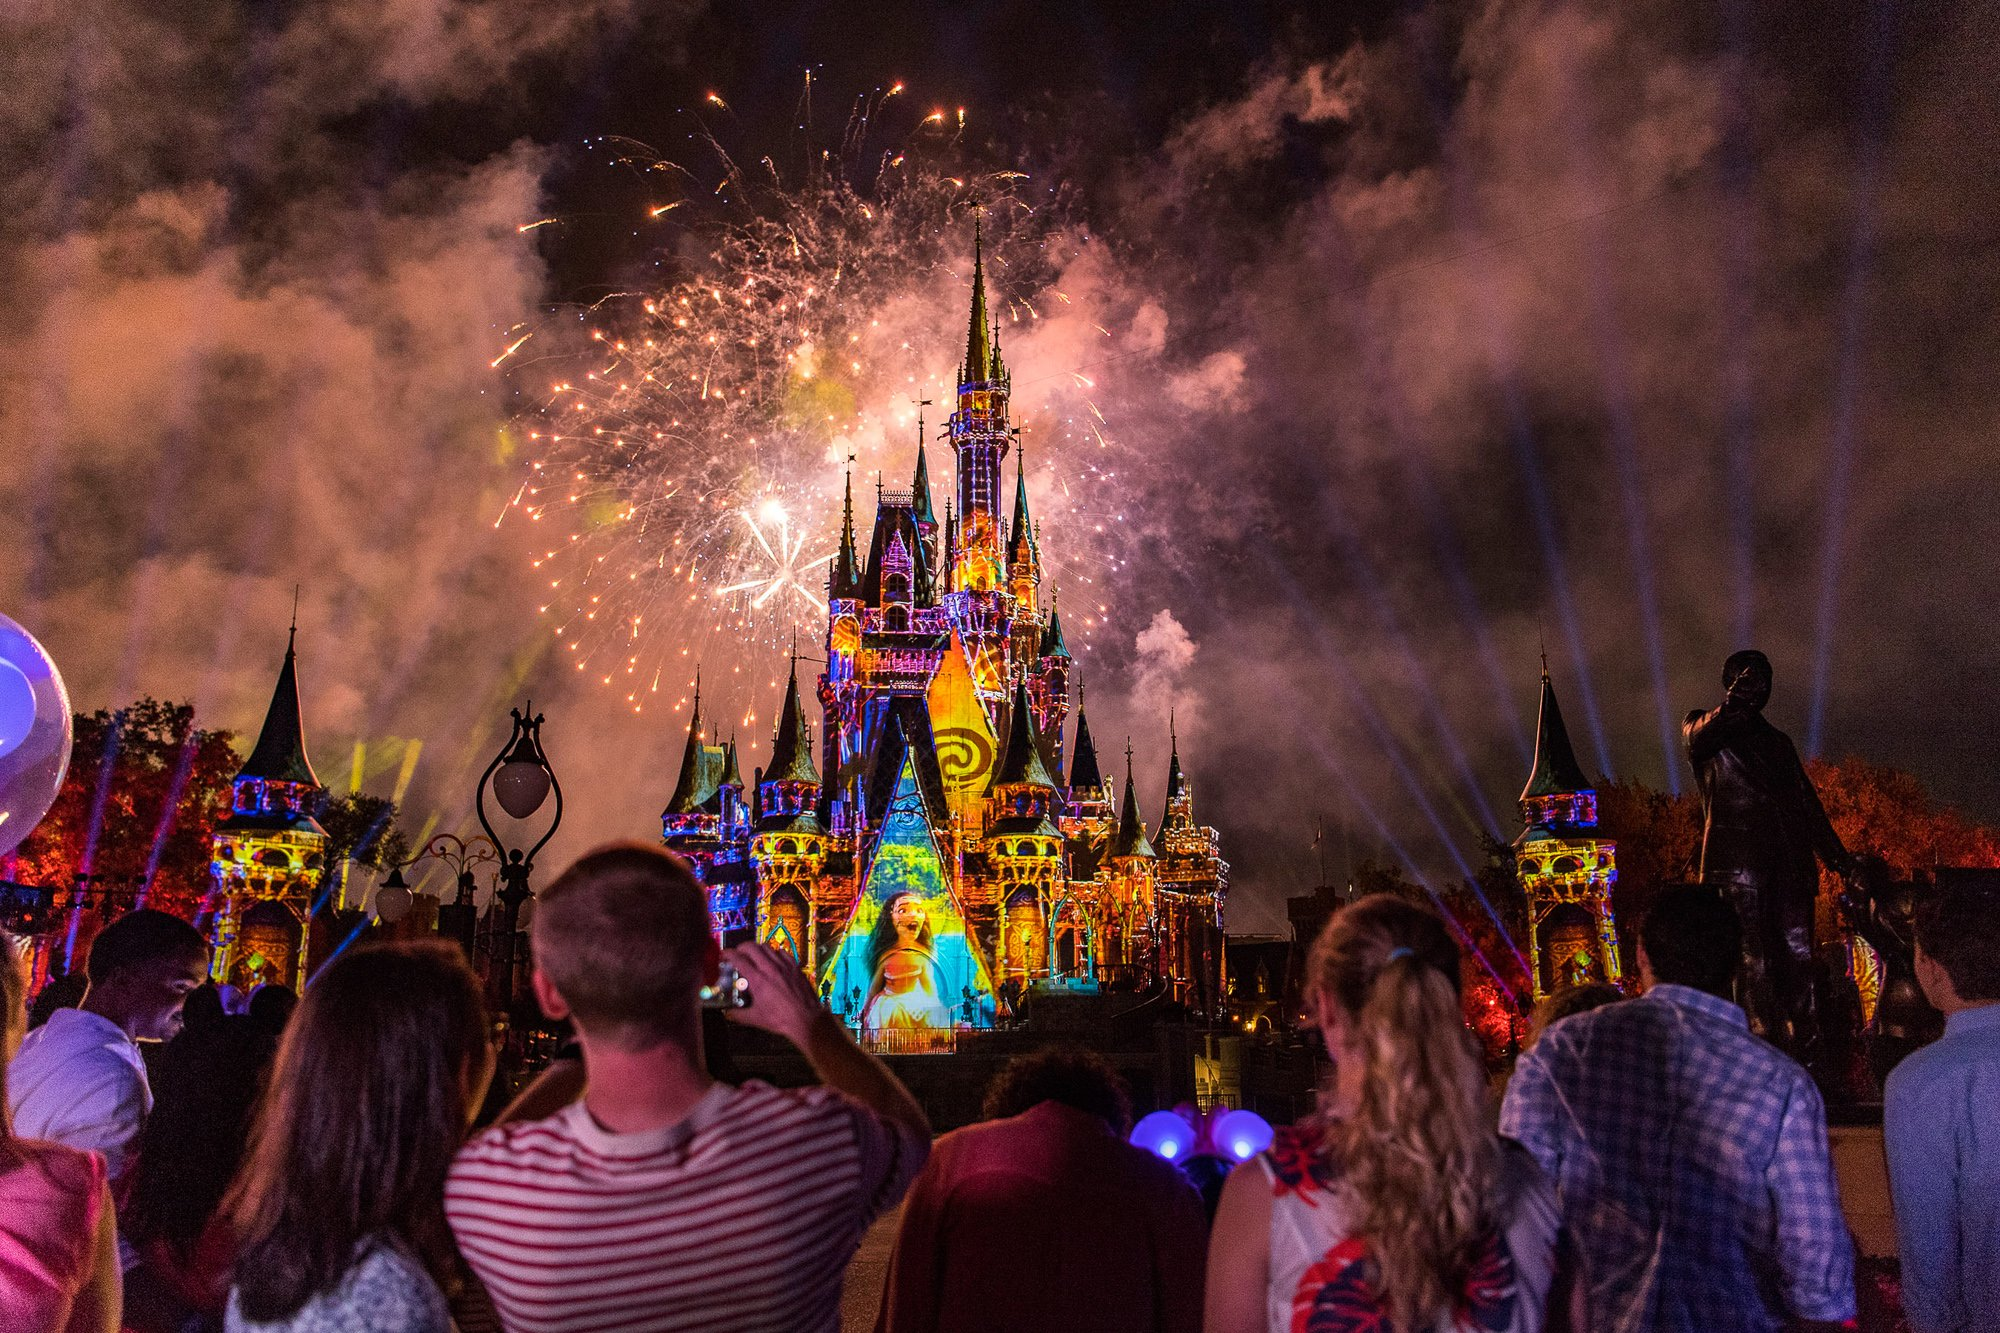 Stay late to watch fireworks at Disney World with teens and tweens